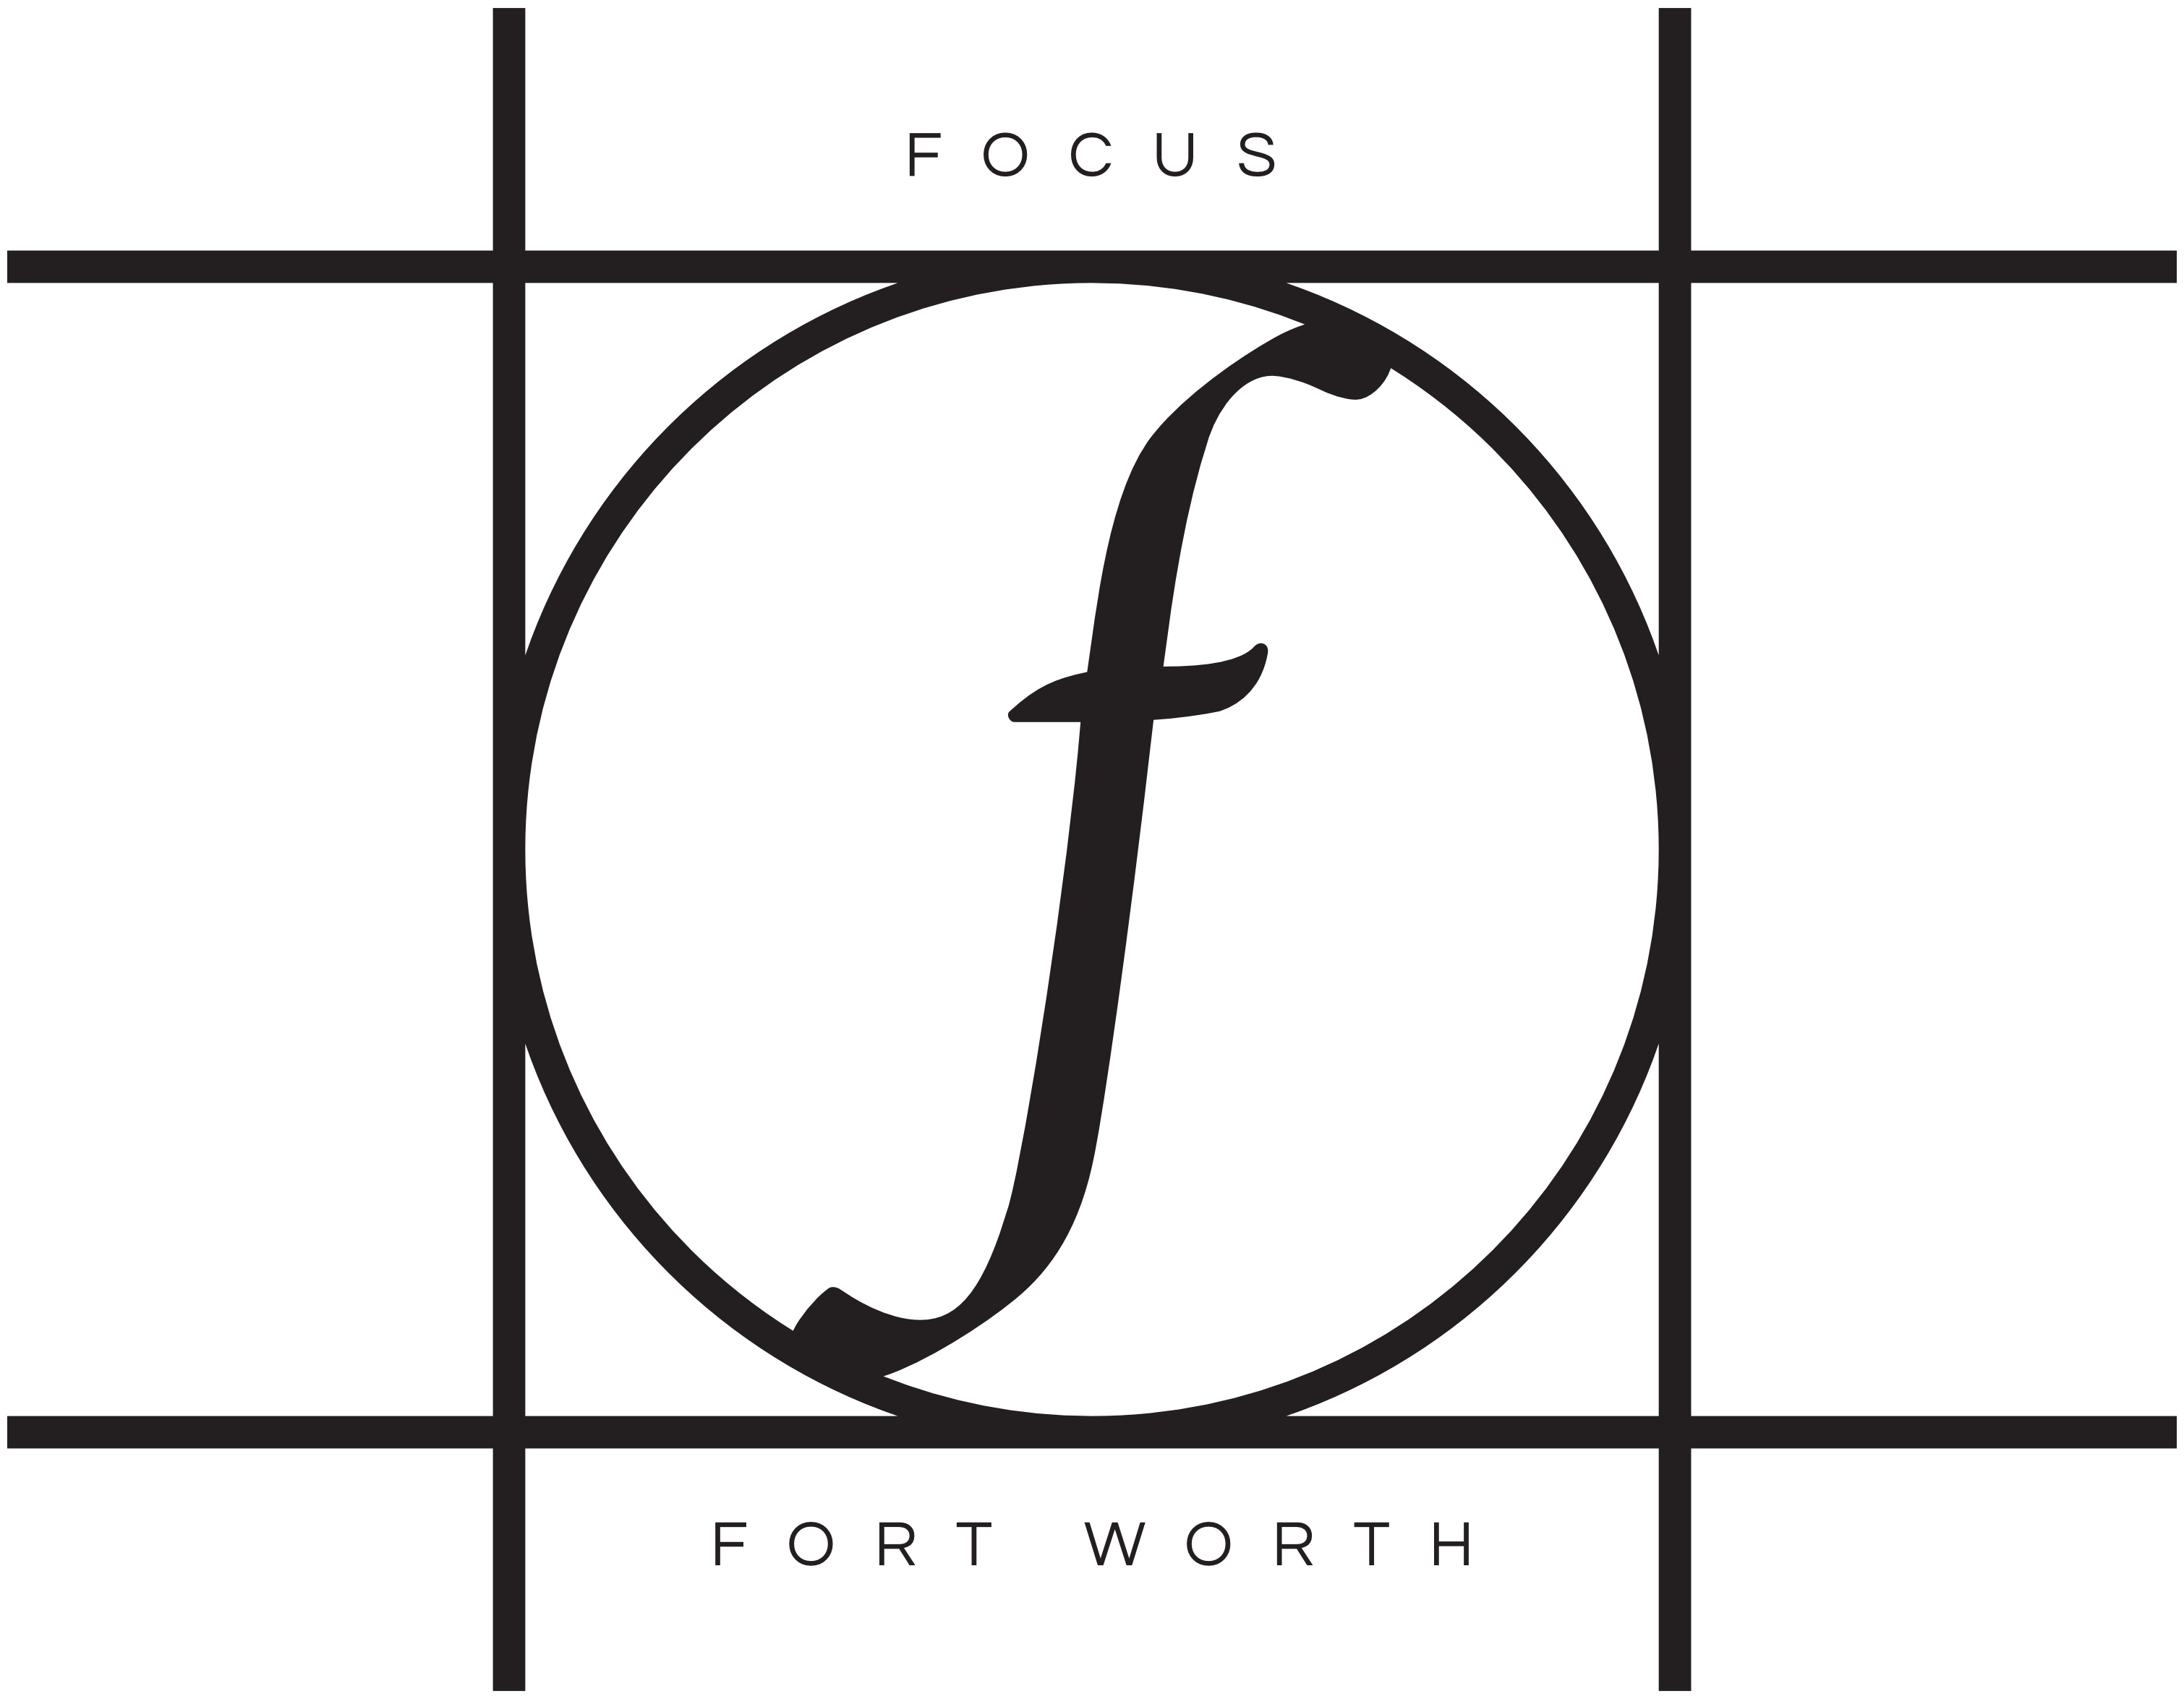 Focus - Fort Worth Photography